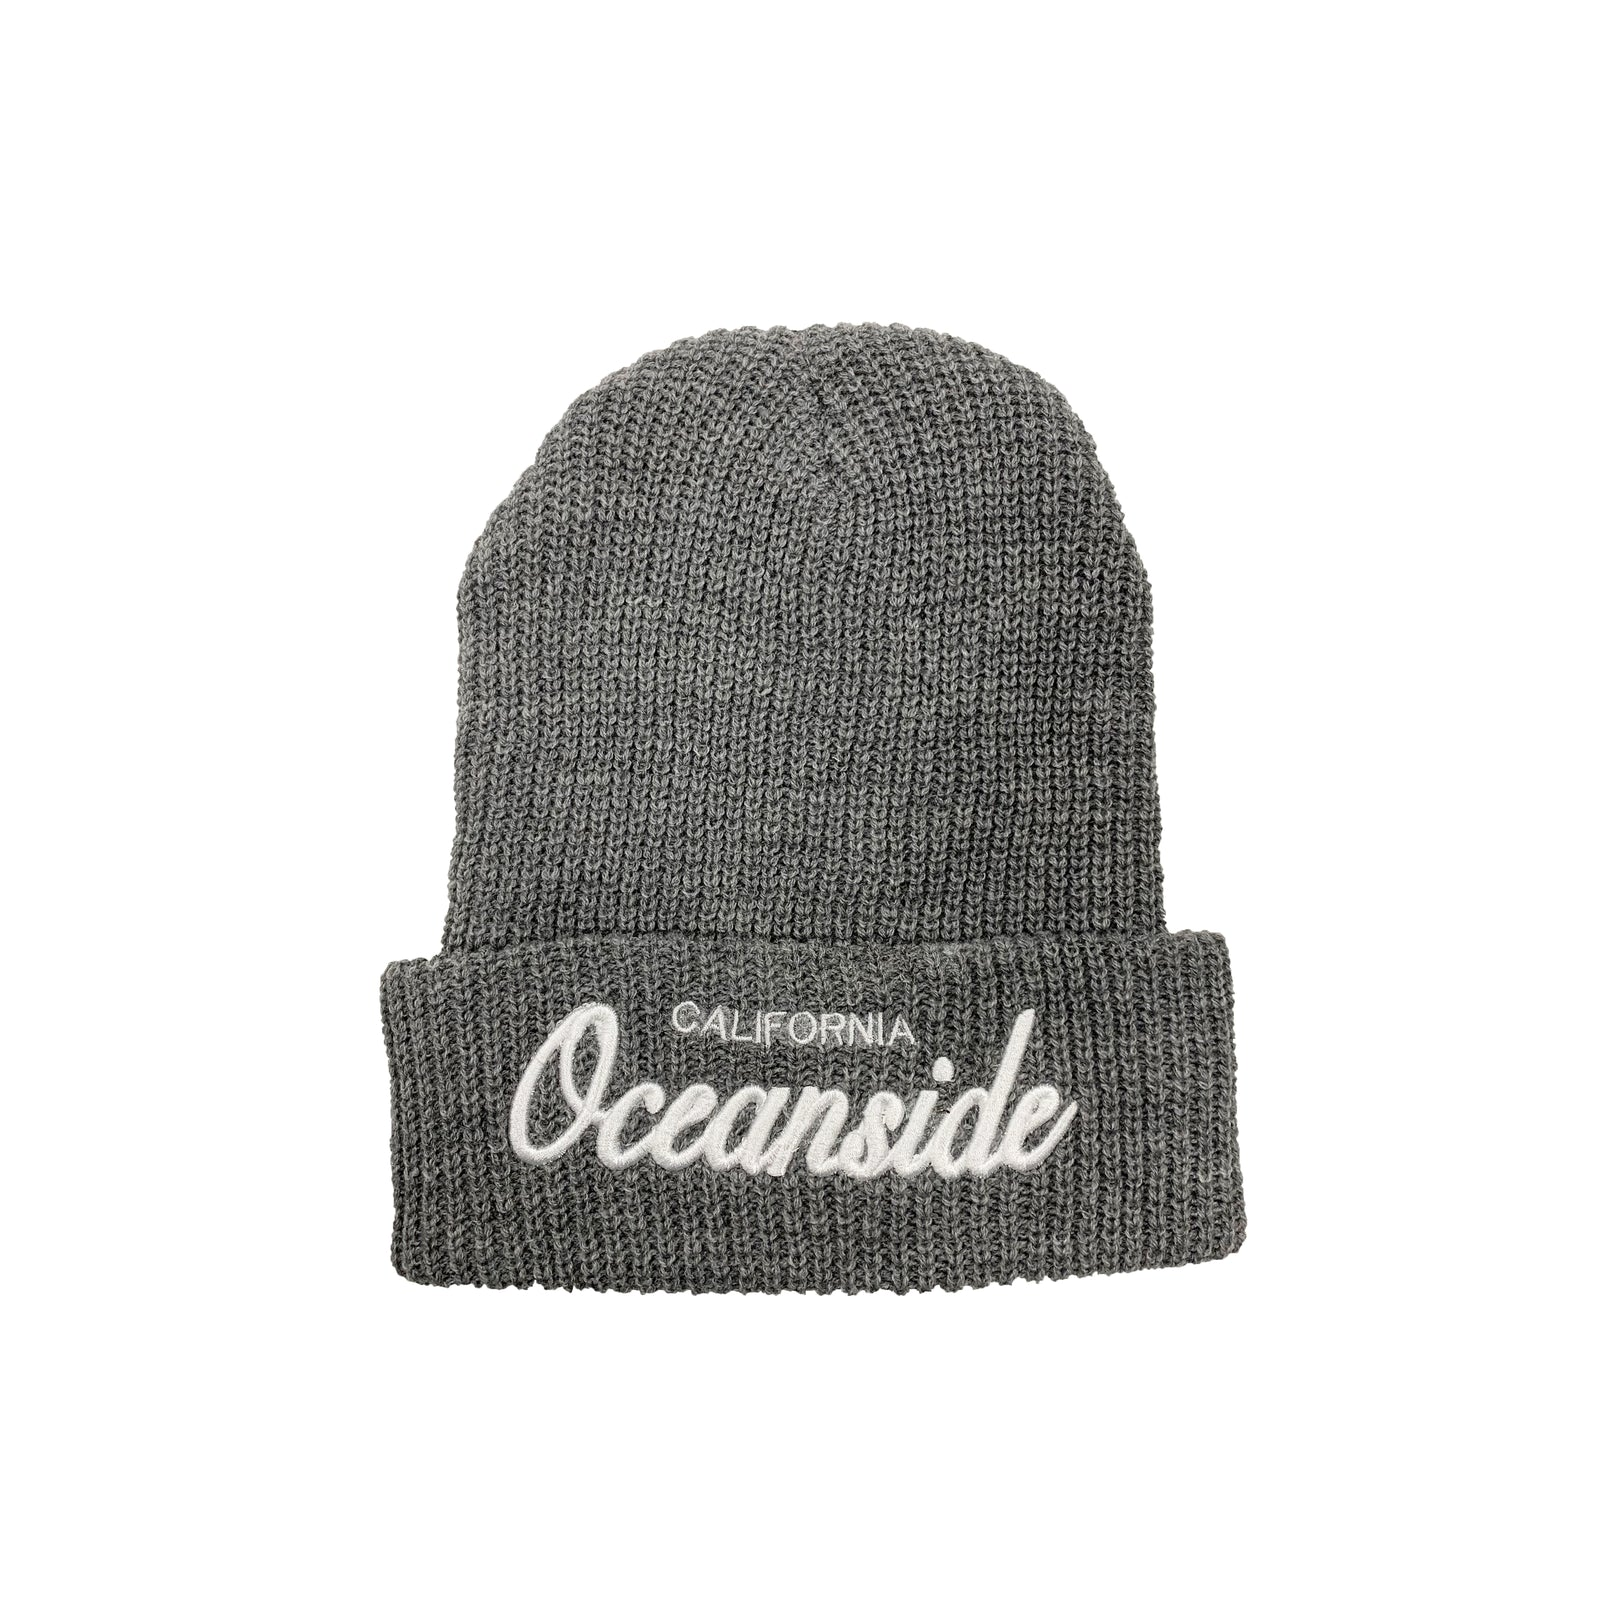 Oceanside Cursive Knitted Beanie (Grey)